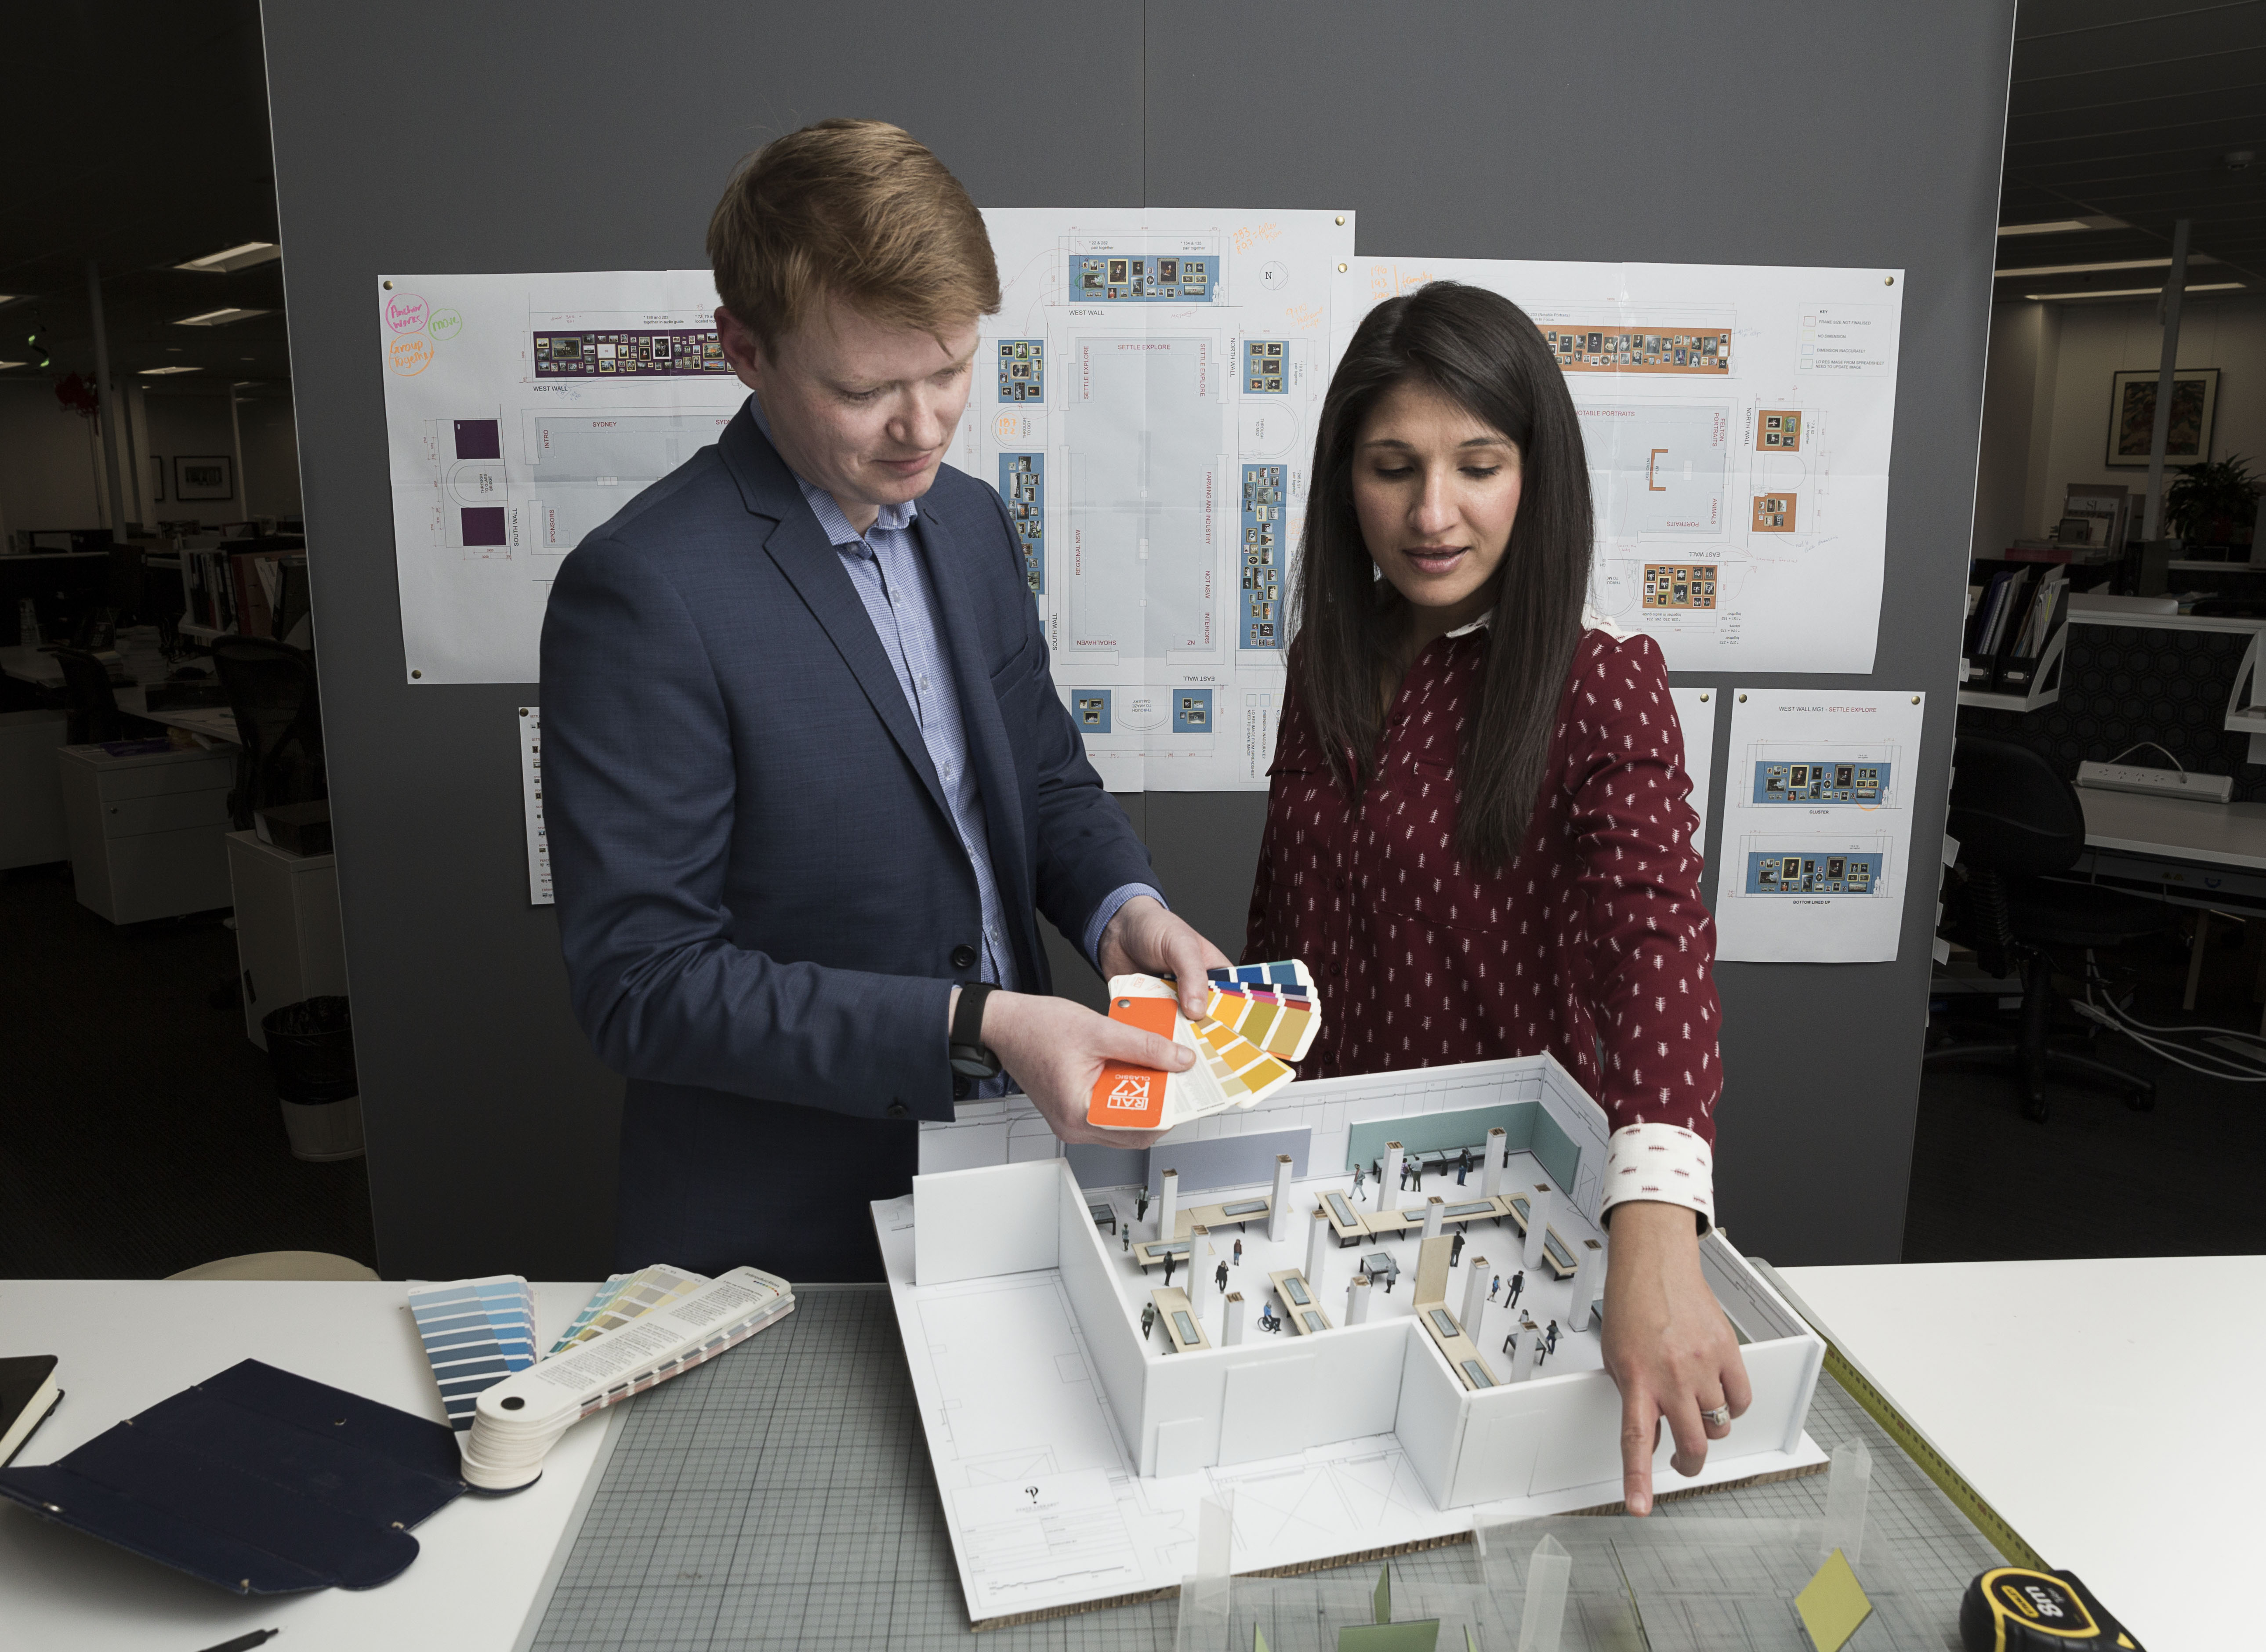 Exhibition designer Paul Bewley and Manager of Exhibitions Rawiya Jenkins with a scale-model of the UNESCO Six exhibition, photo by Zoe Burrell